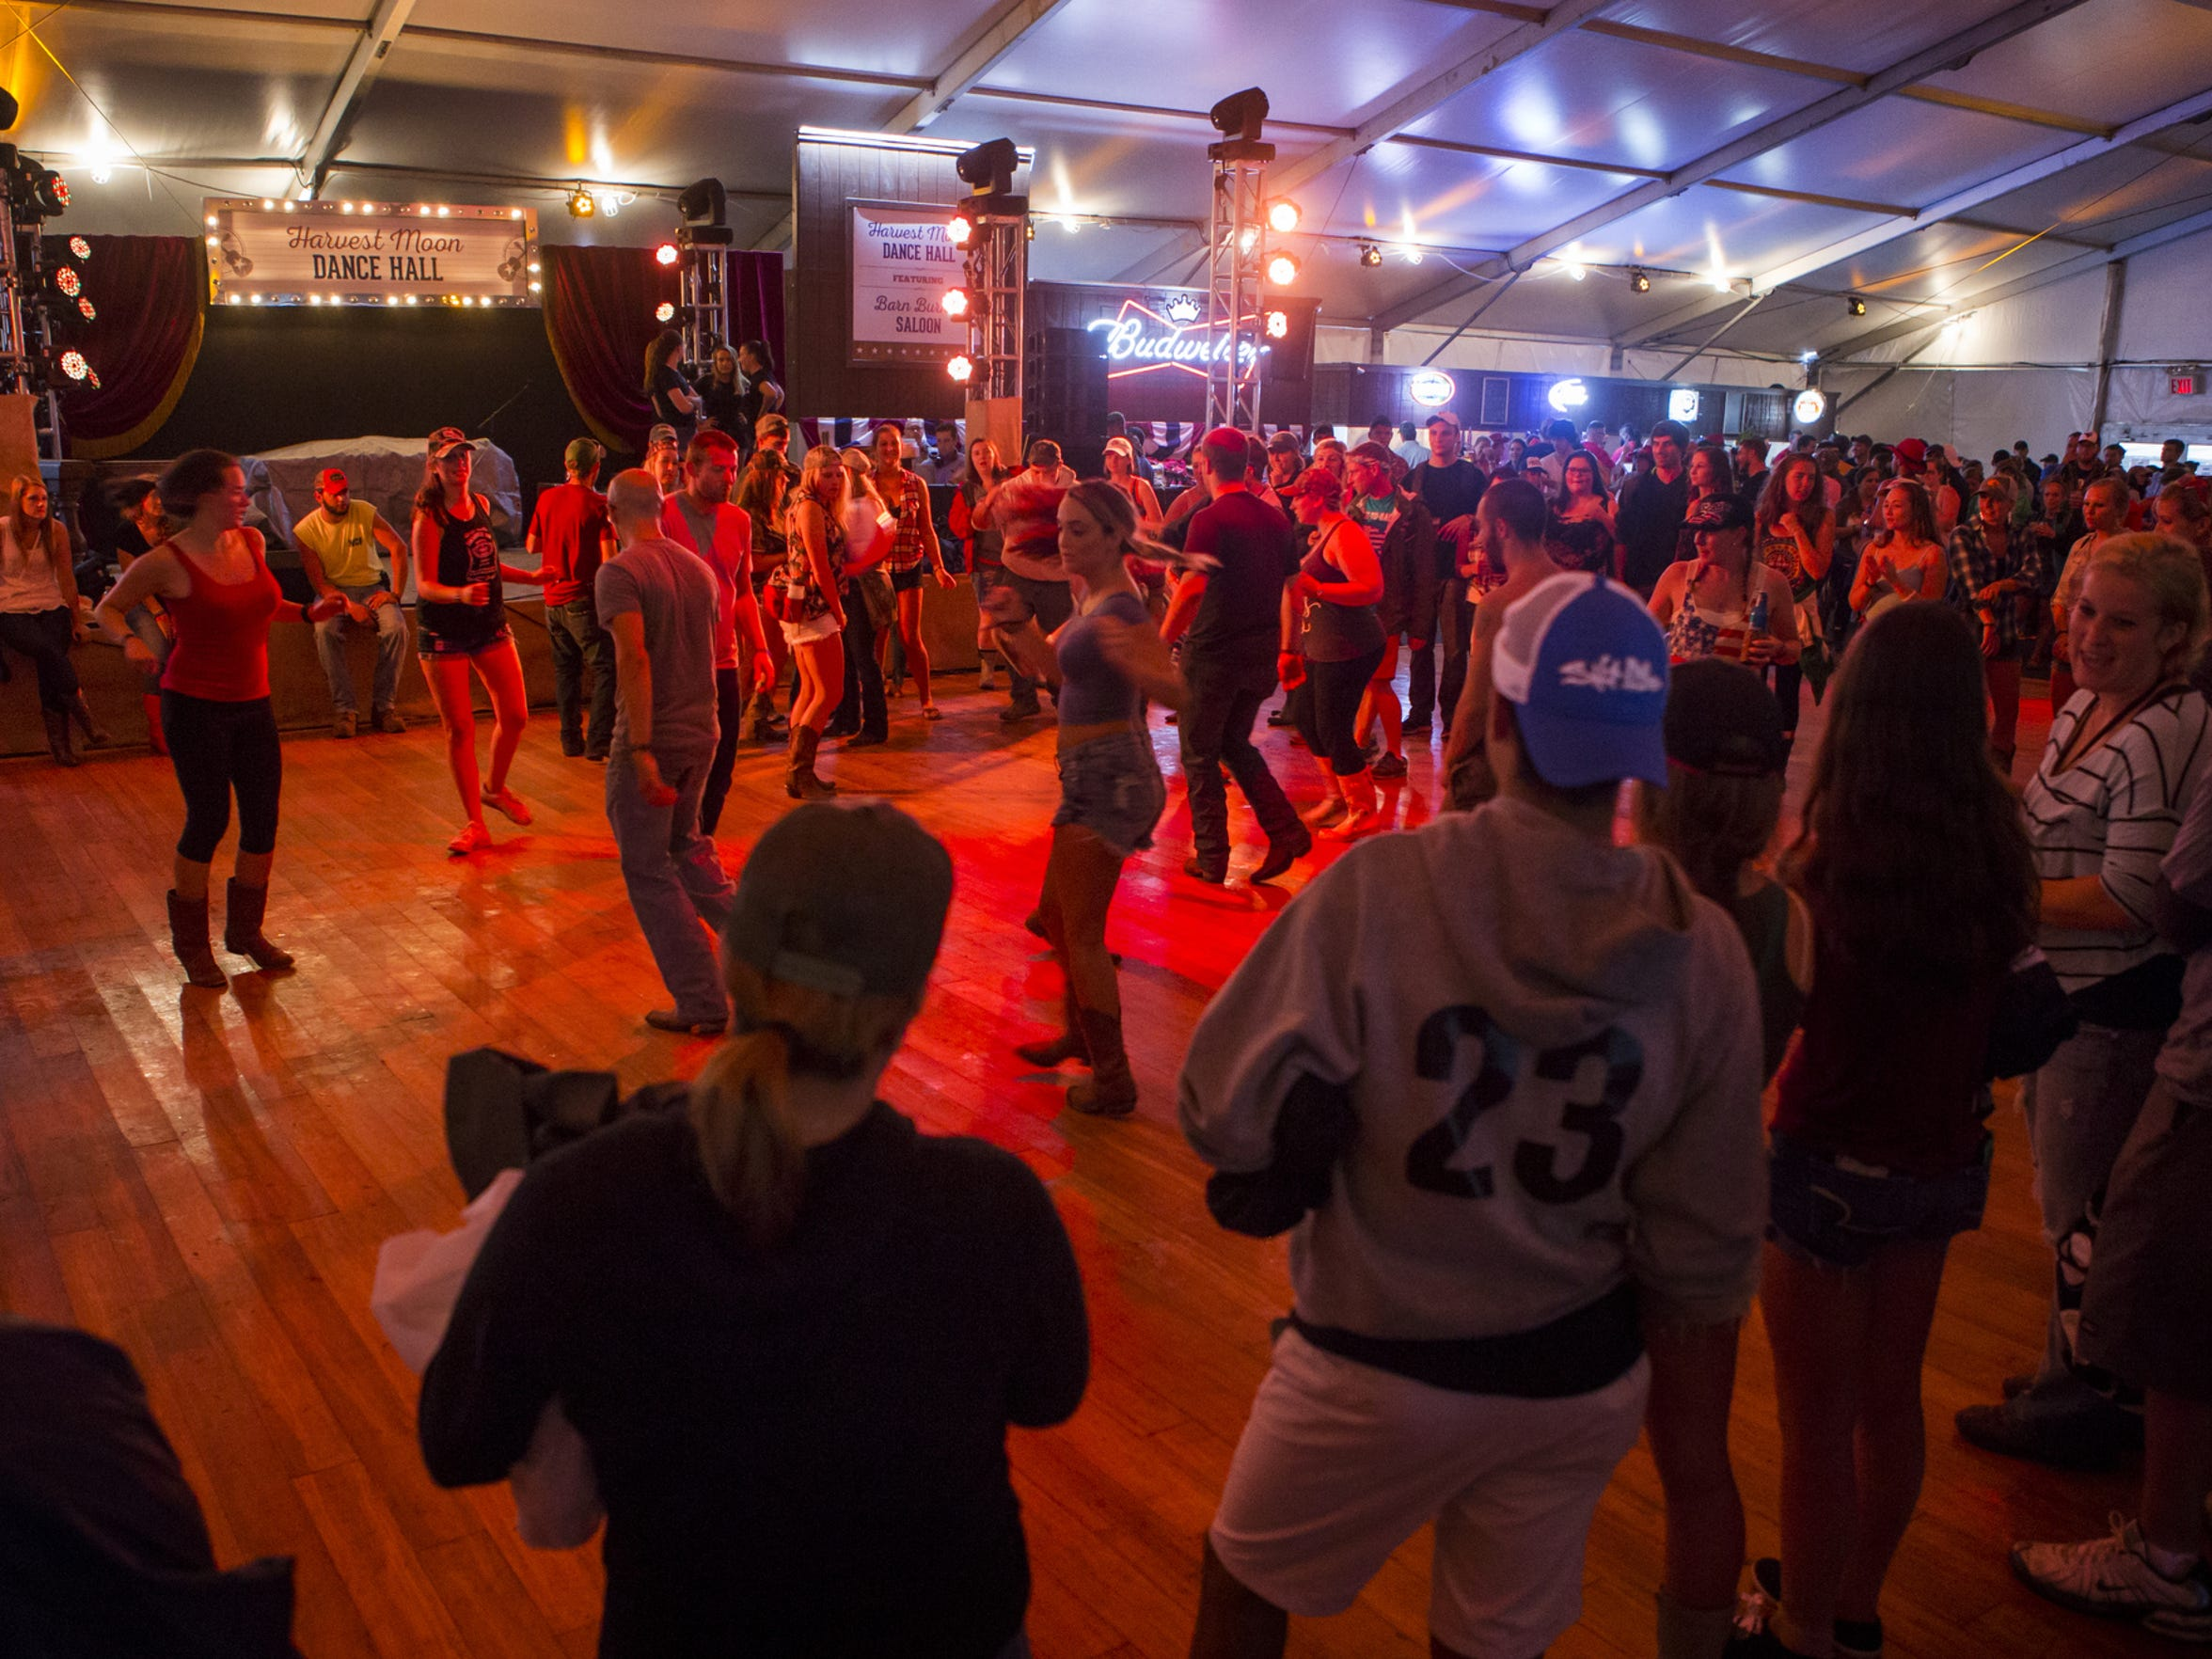 Spectators gather around line dancers in the Harvest Moon Dance Hall at the Big Barrel Country Music Festival in Dover last summer.